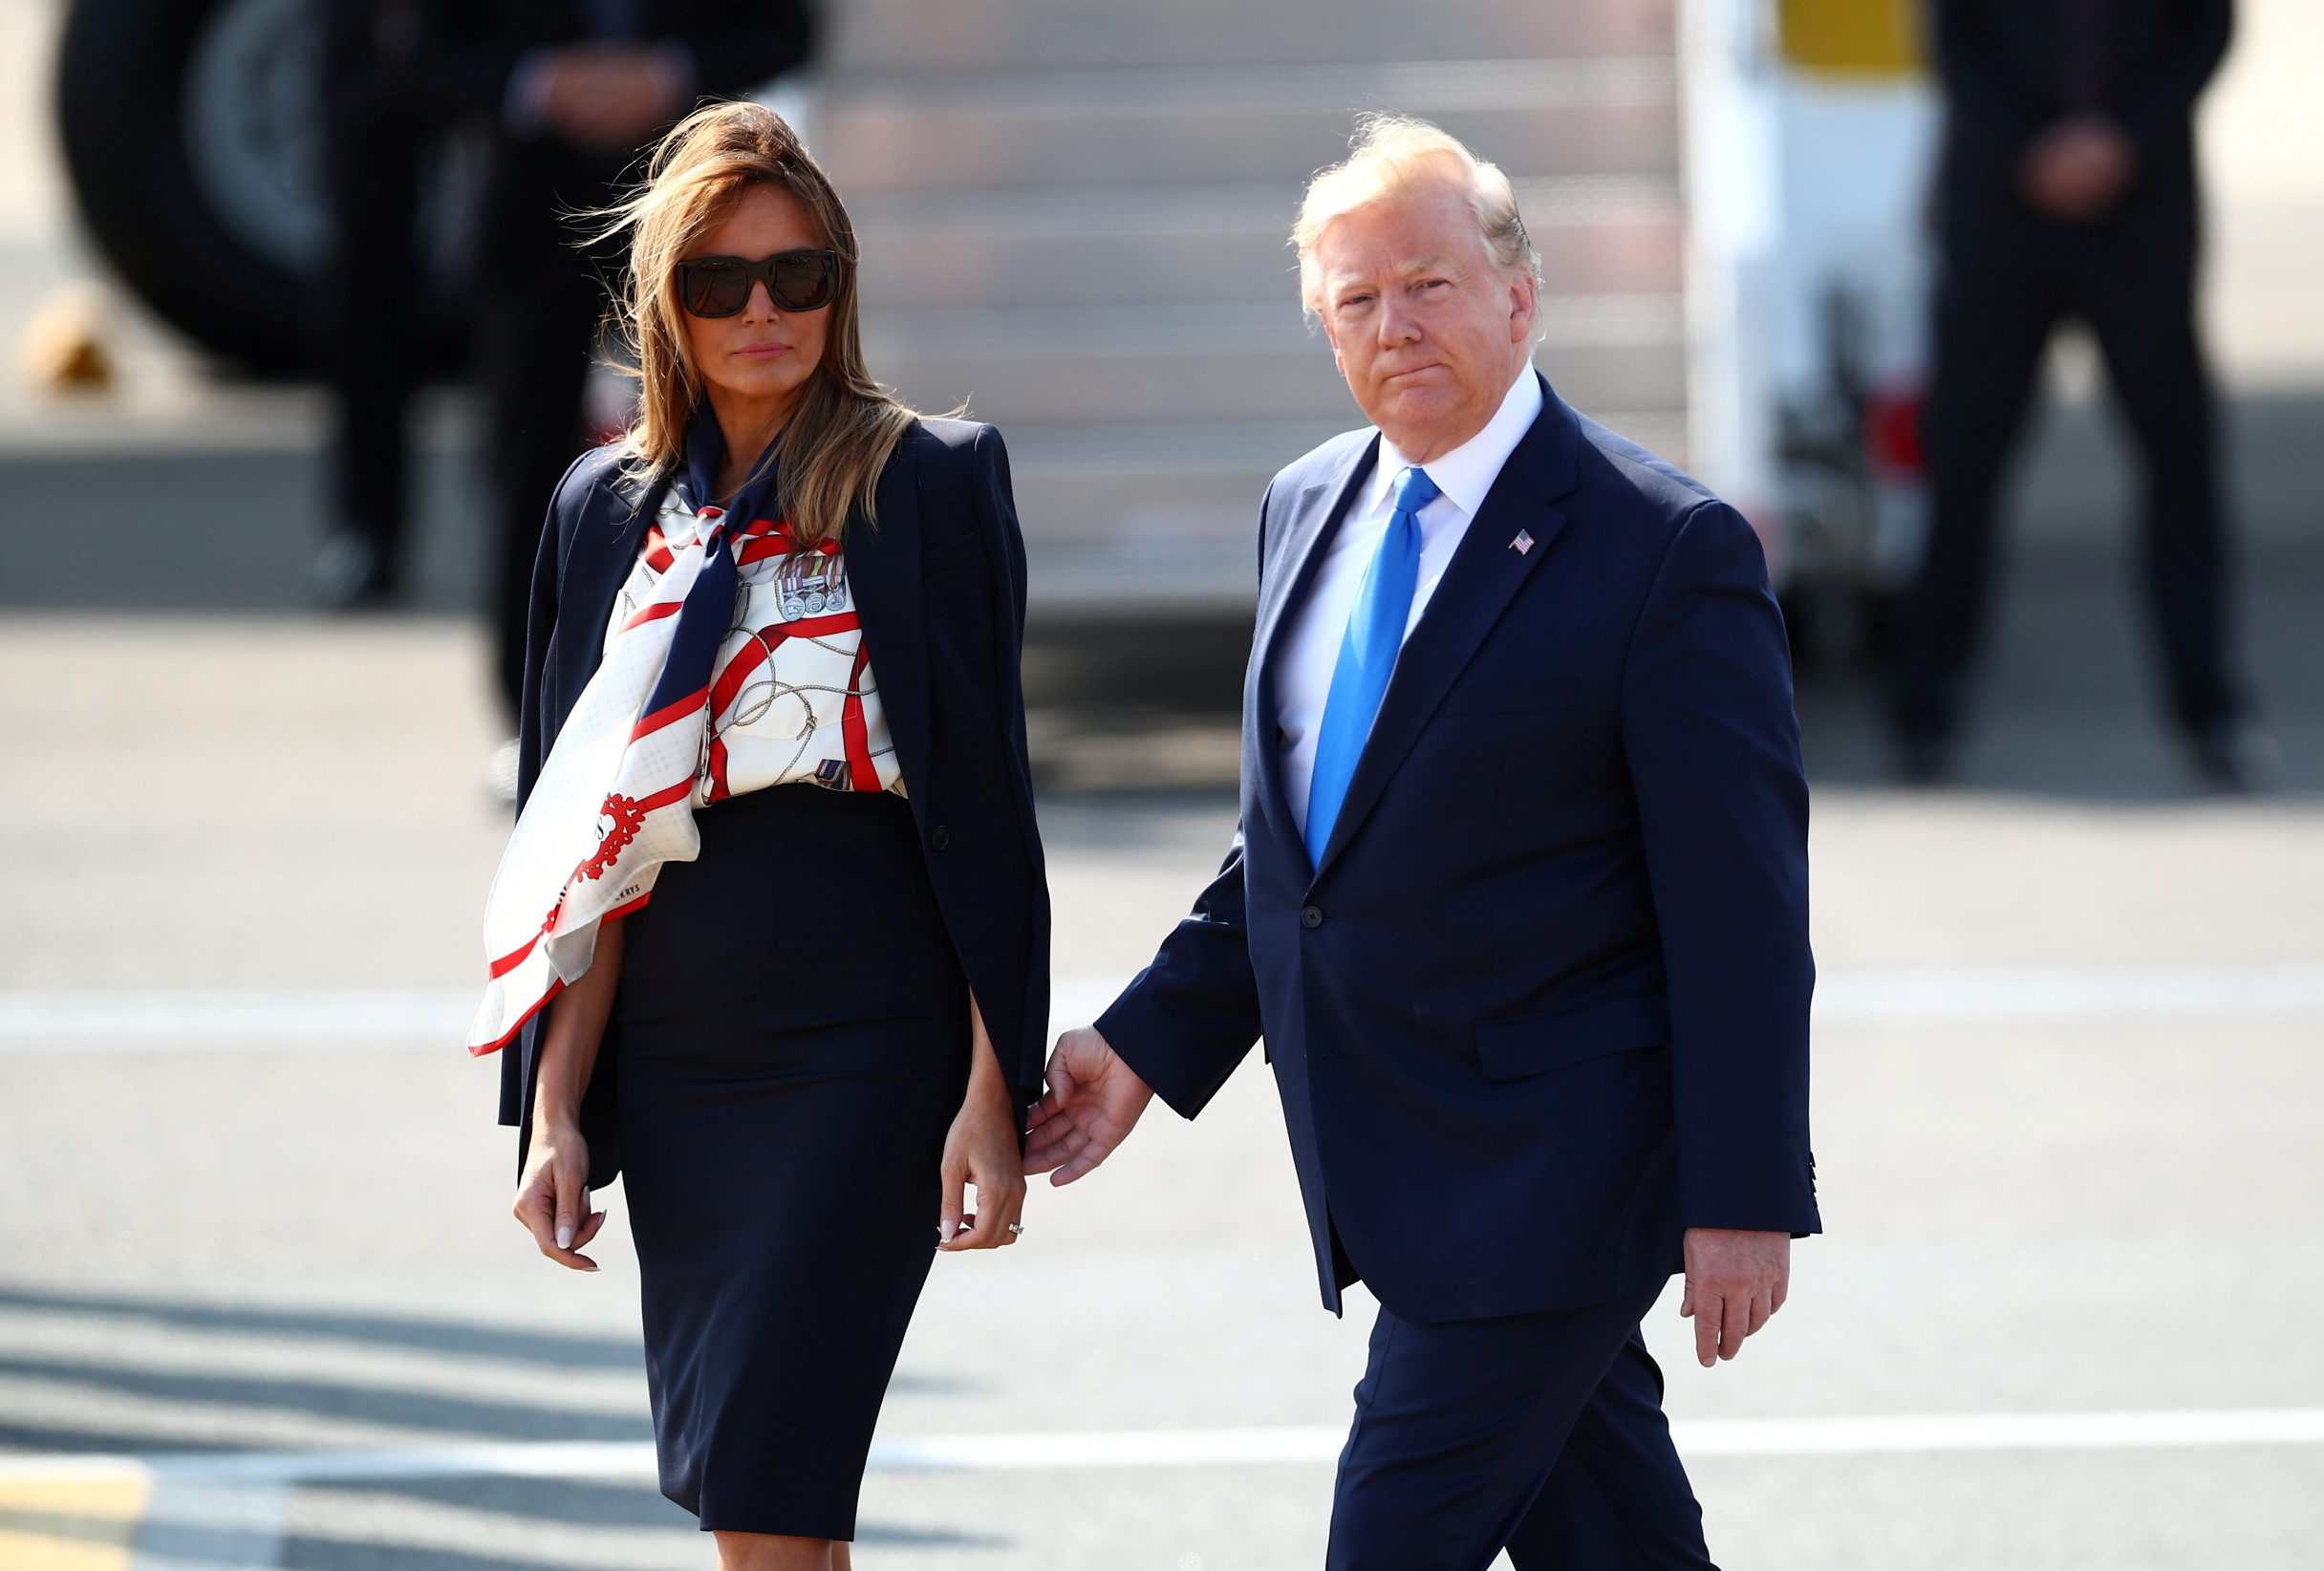 U.S. President Donald Trump and First Lady Melania Trump arrive for their state visit to Britain, at Stansted Airport near London, Britain, June 3, 2019. REUTERS/Carlos Barria     TPX IMAGES OF THE DAY